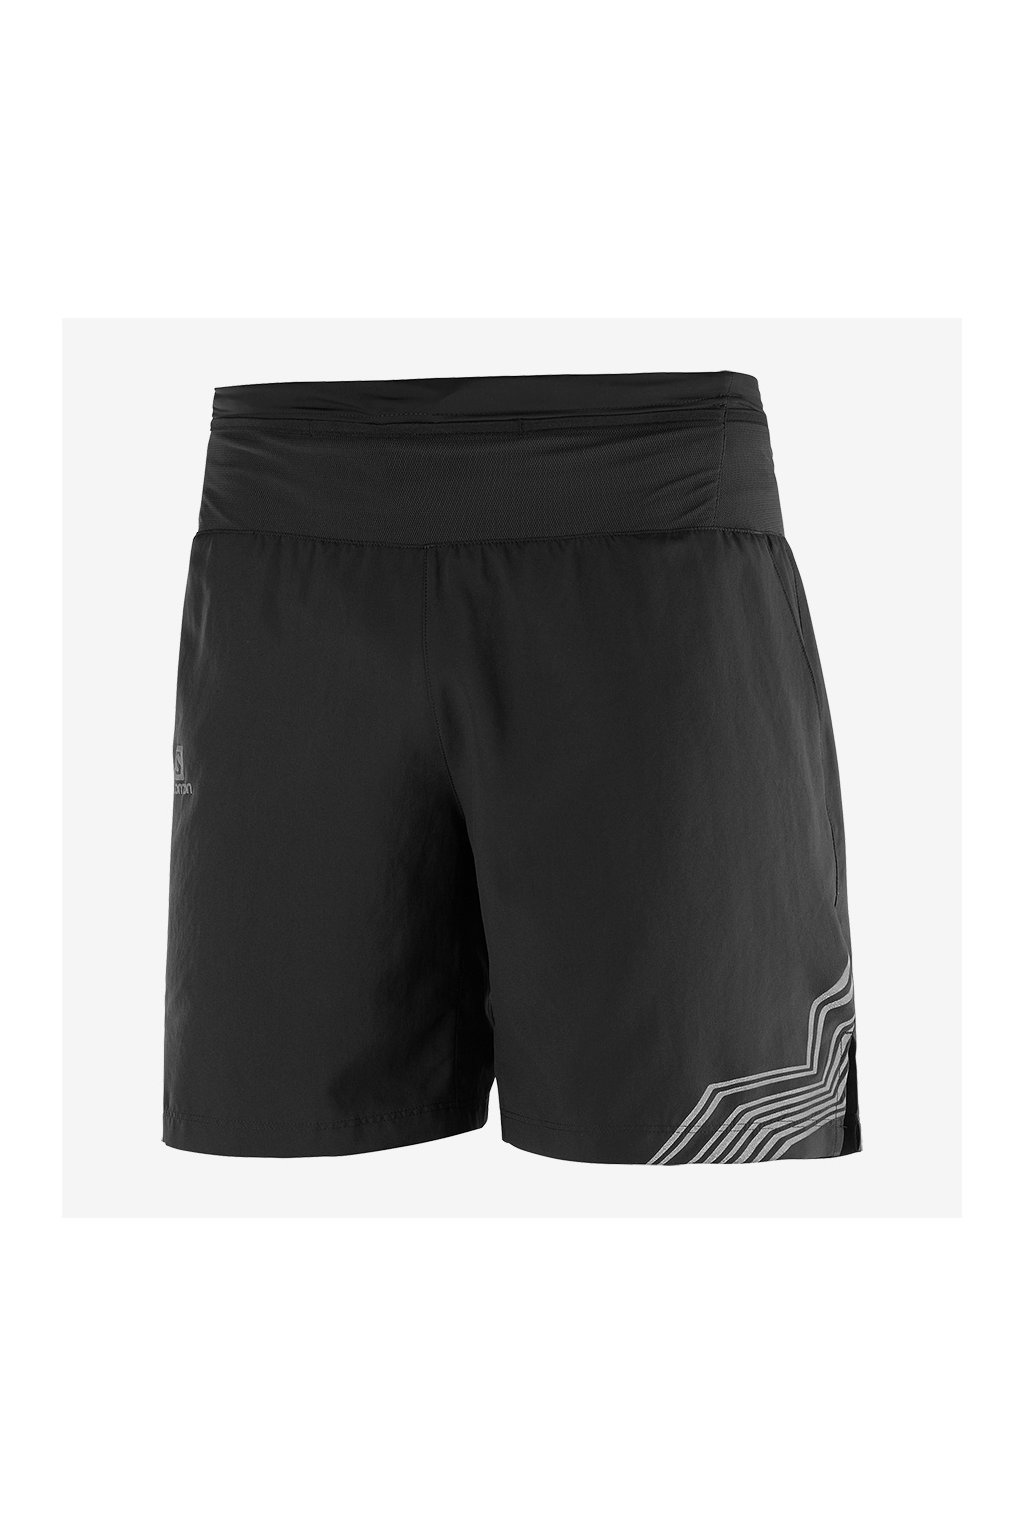 xa training short m LC1375200